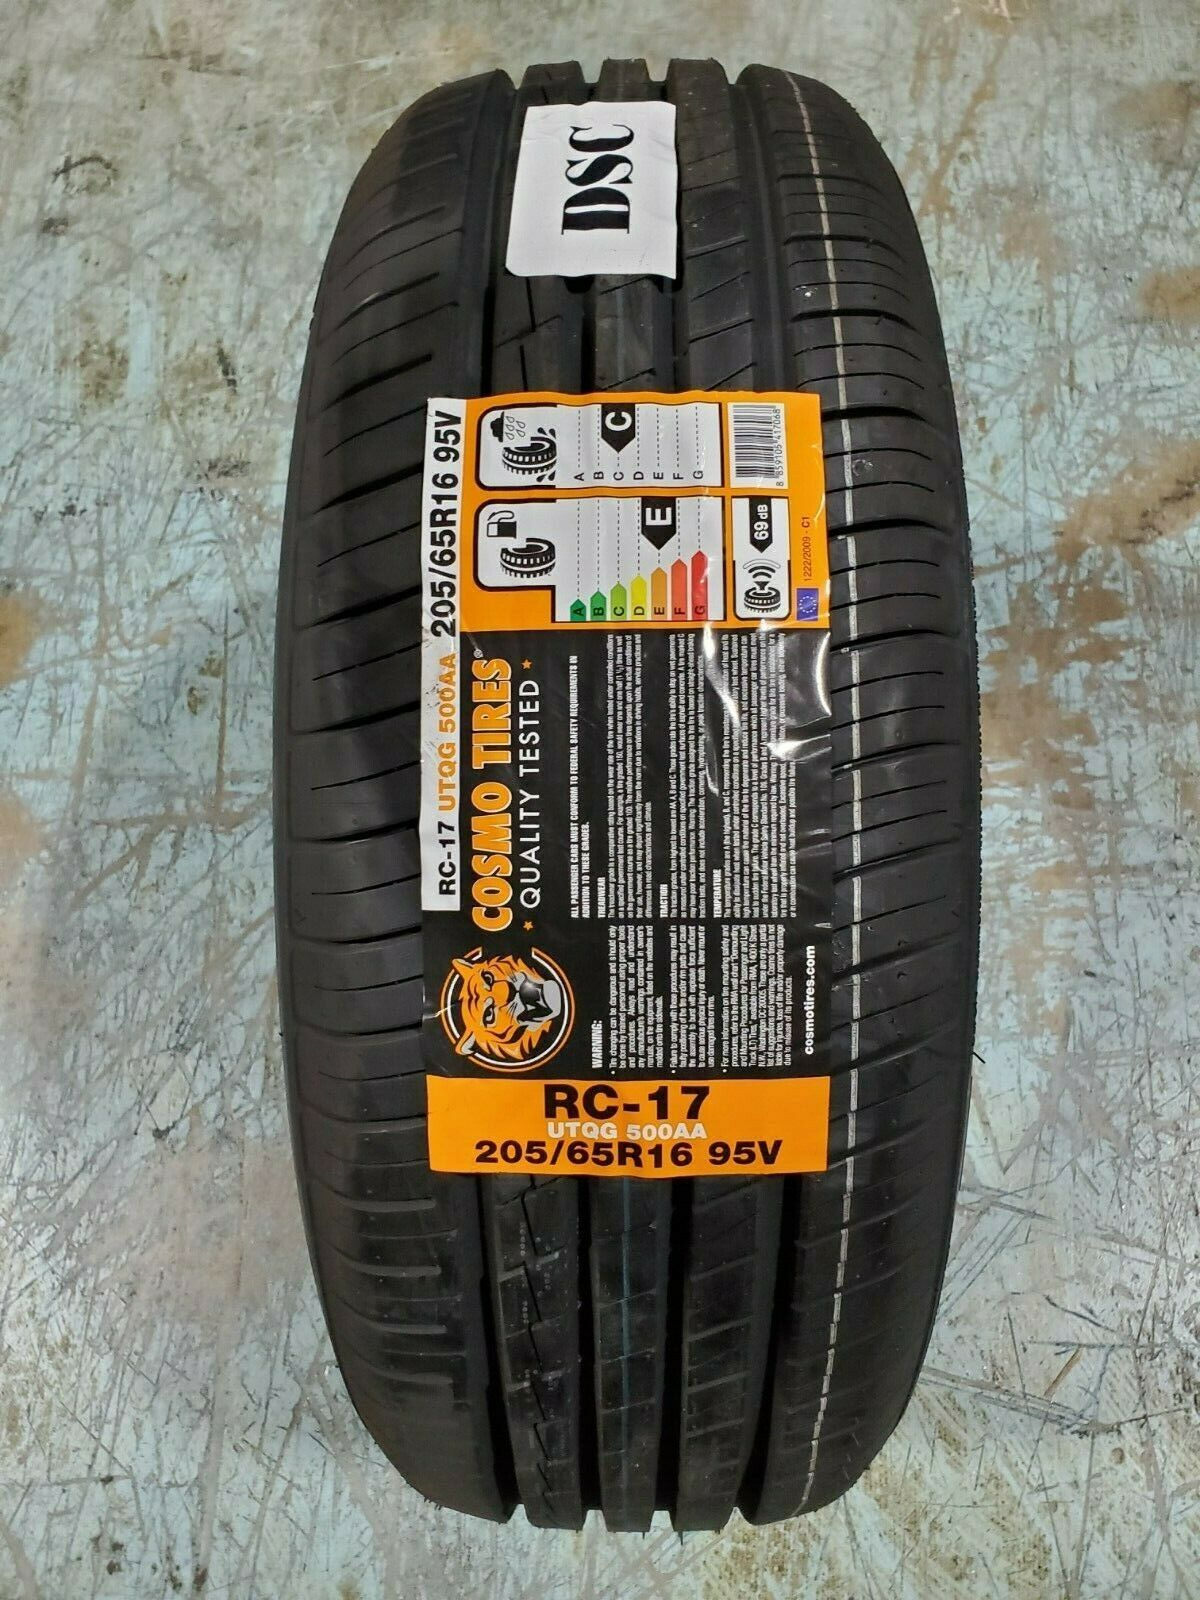 Primary image for 205/65R16 Cosmo RC-17 95V M+S (SET OF 4)